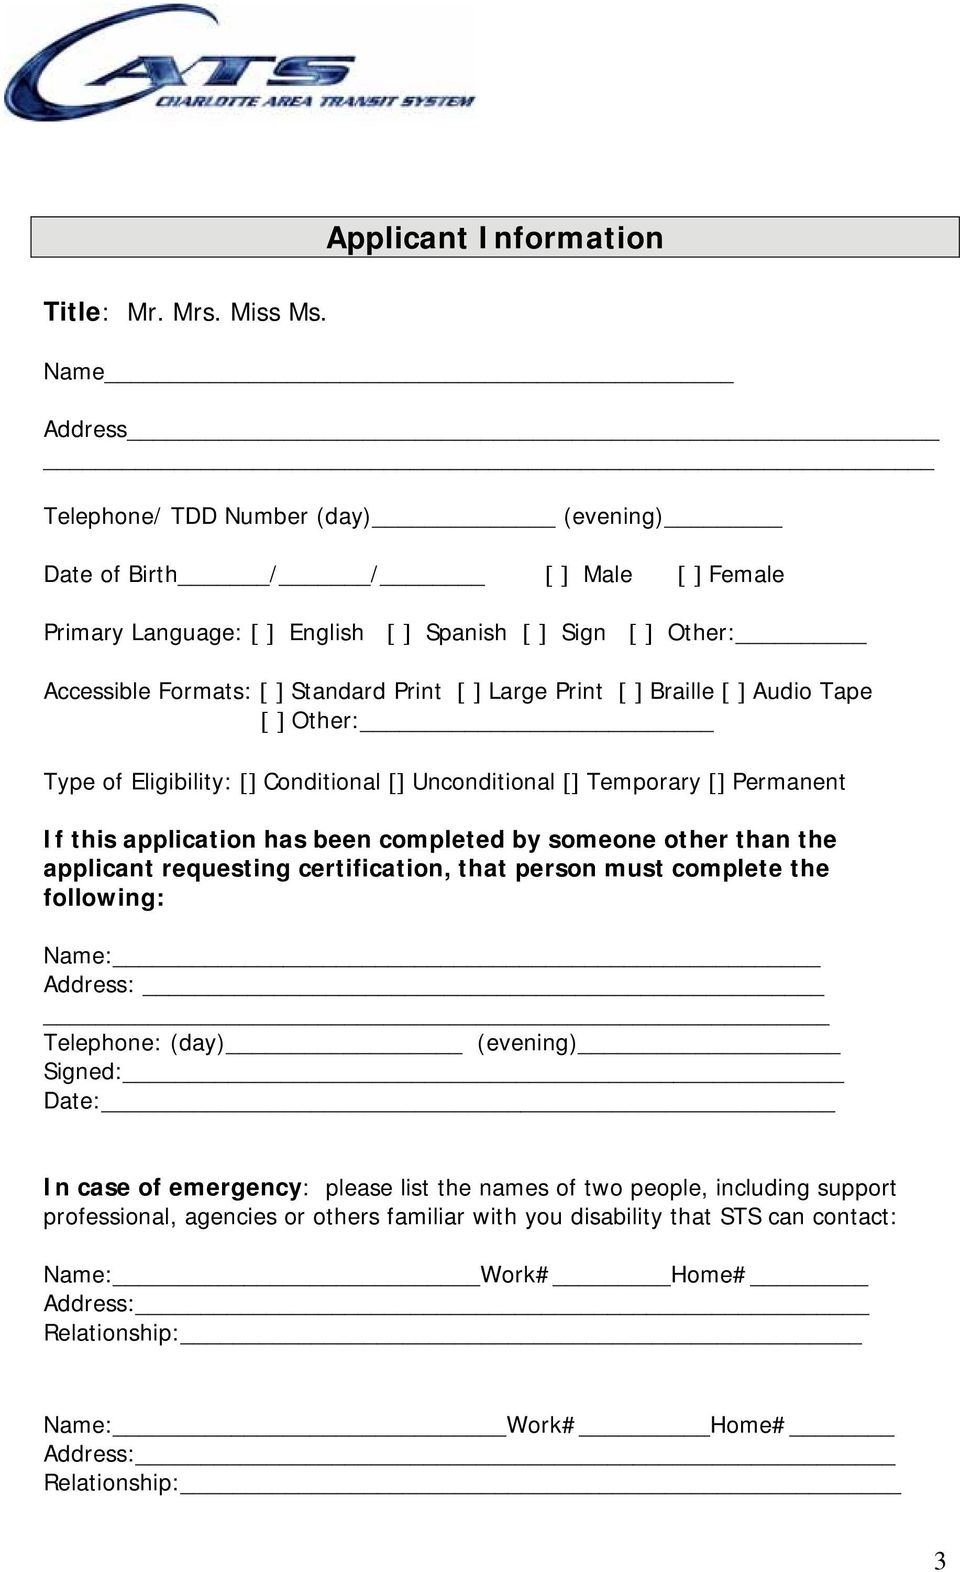 Standard Print [ ] Large Print [ ] Braille [ ] Audio Tape [ ] Other: Type of Eligibility: [] Conditional [] Unconditional [] Temporary [] Permanent If this application has been completed by someone